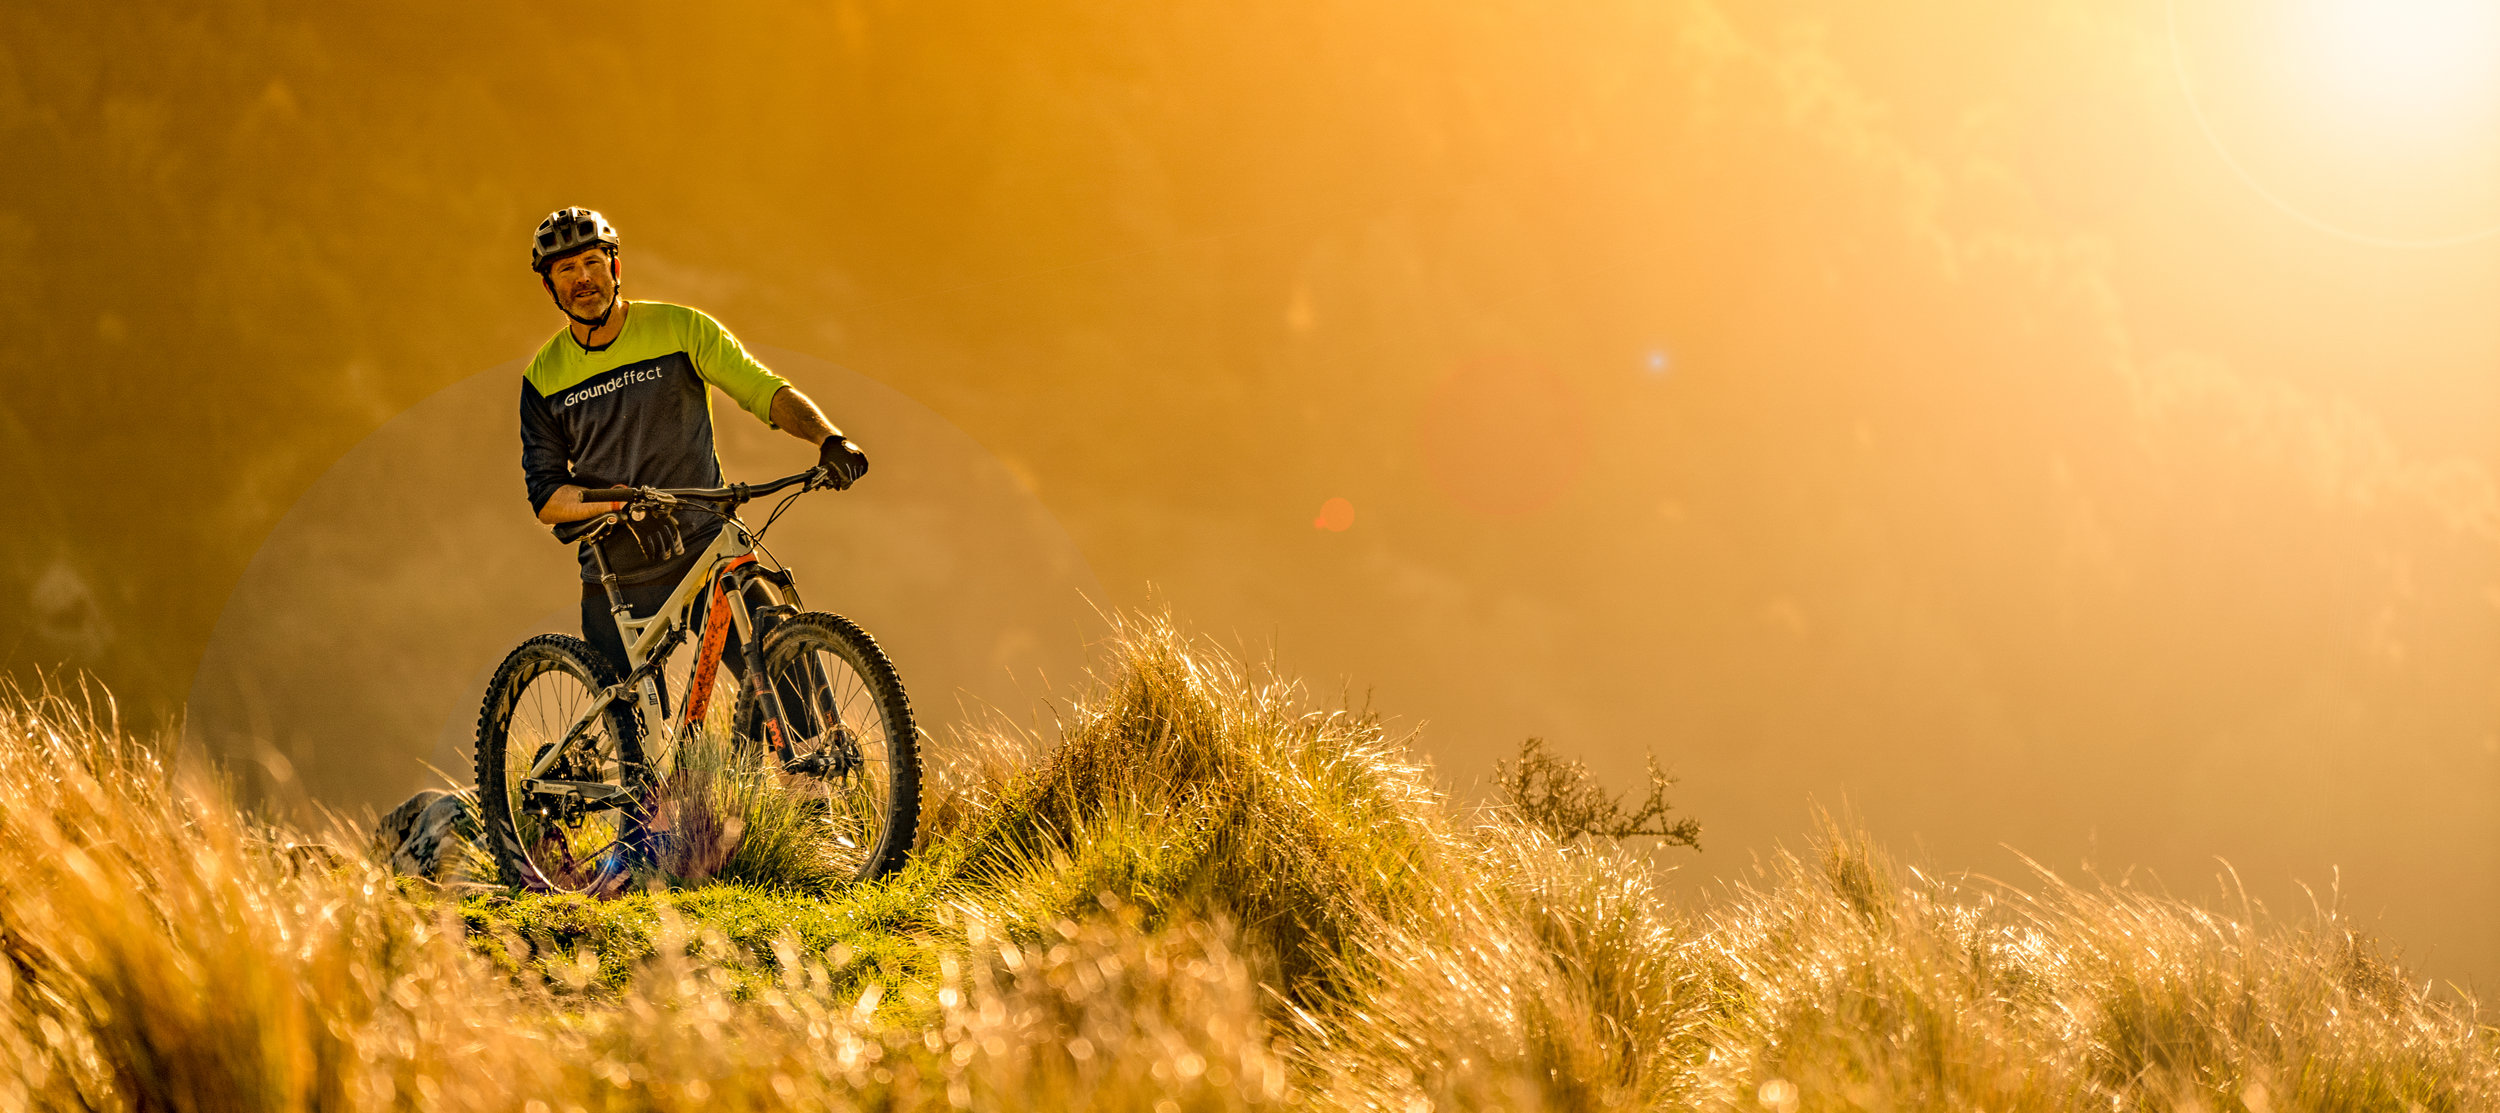 golden light on the Port Hills- pic by @extremekidproductions